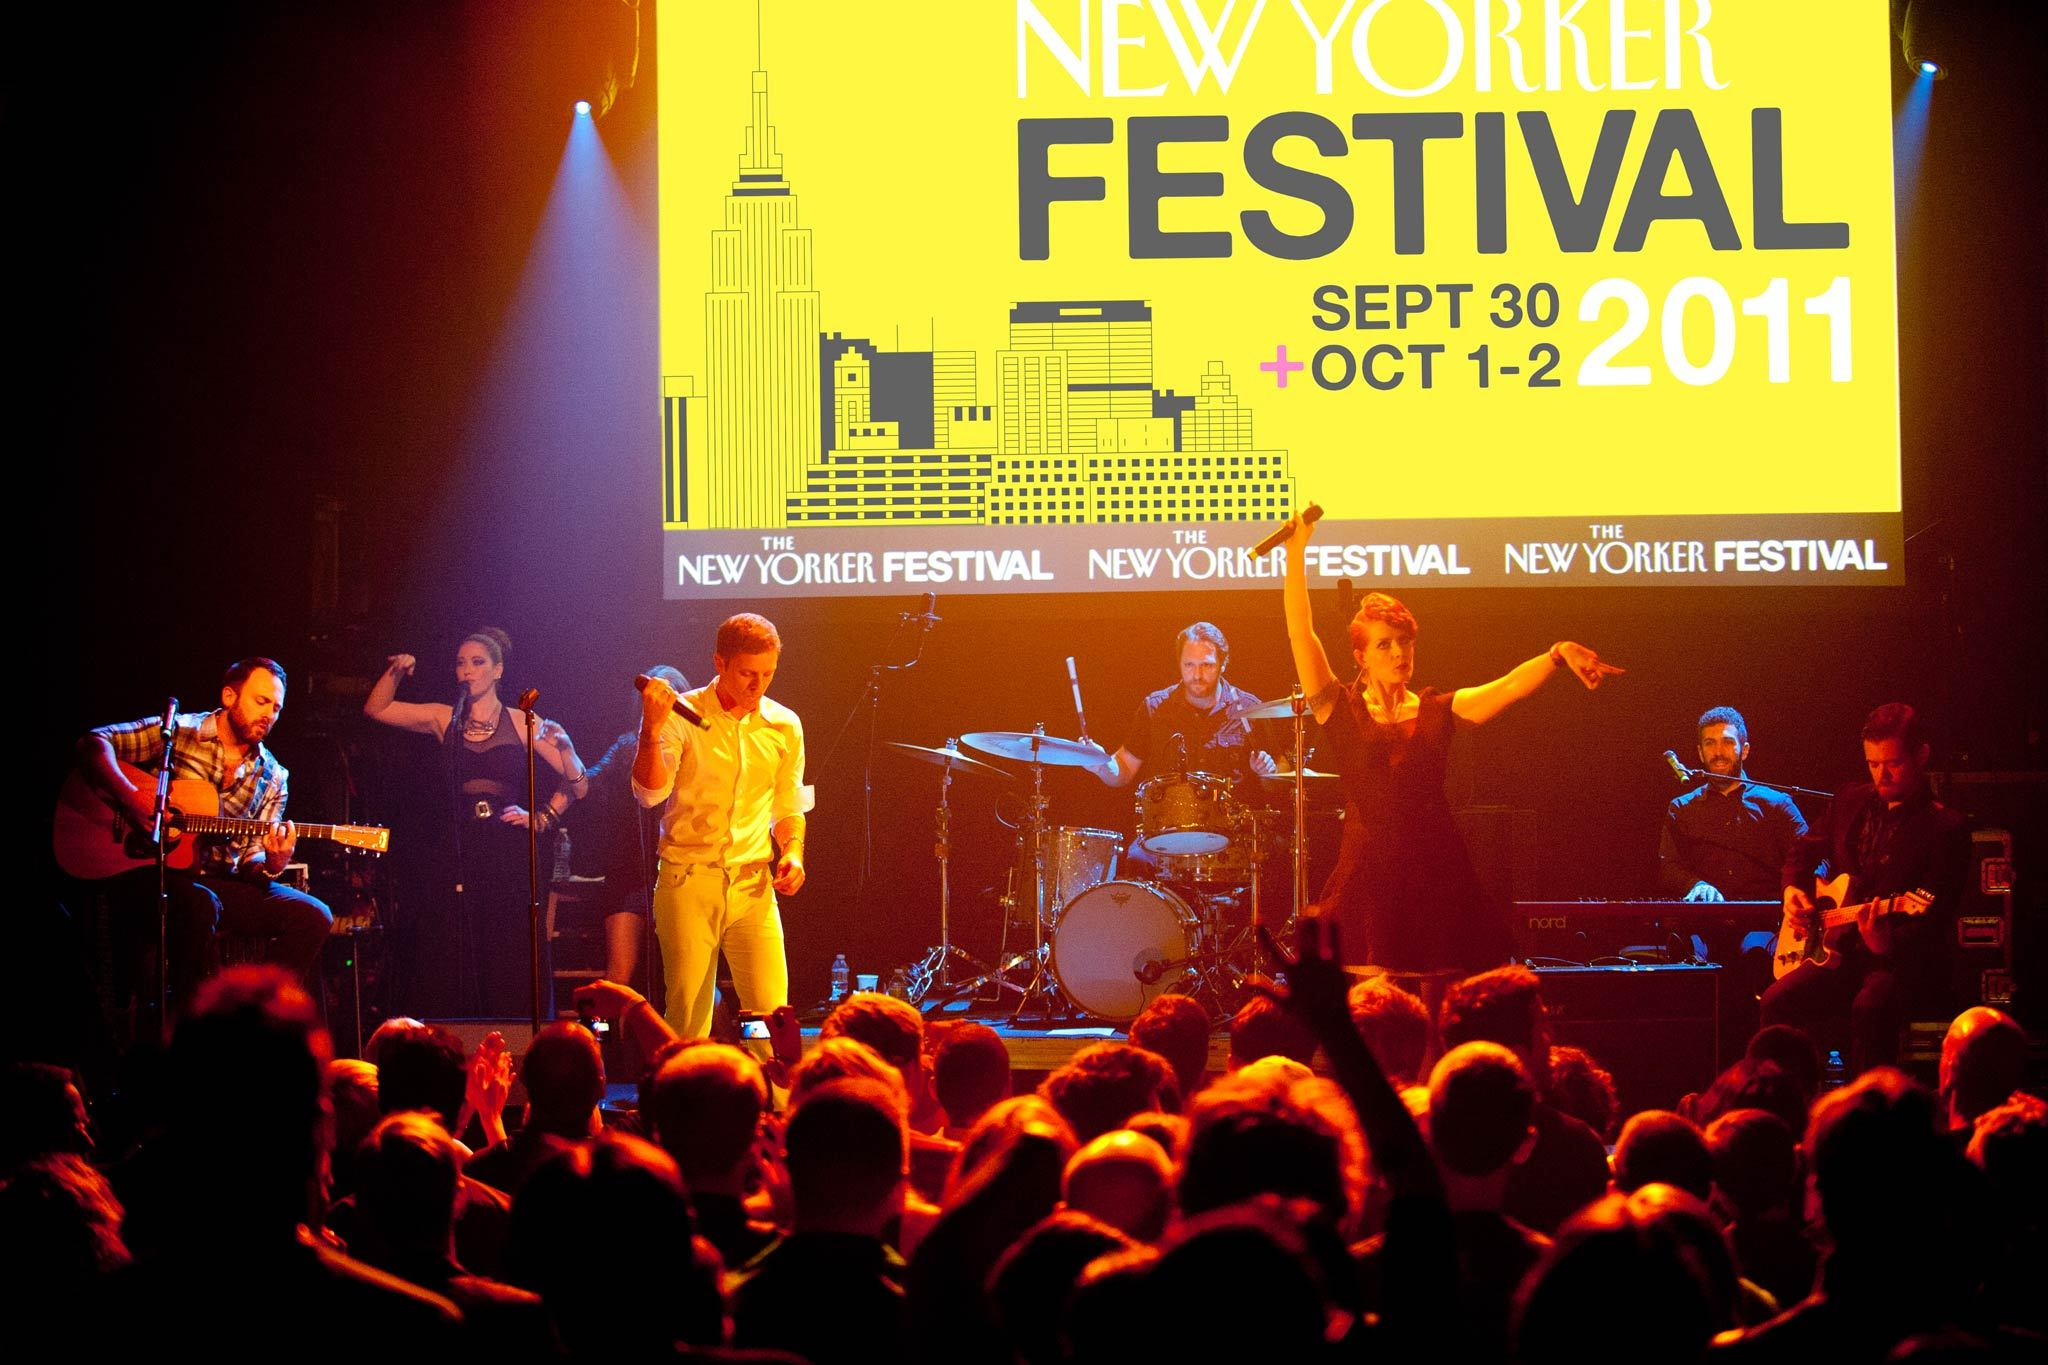 Snag tickets to the New Yorker festival